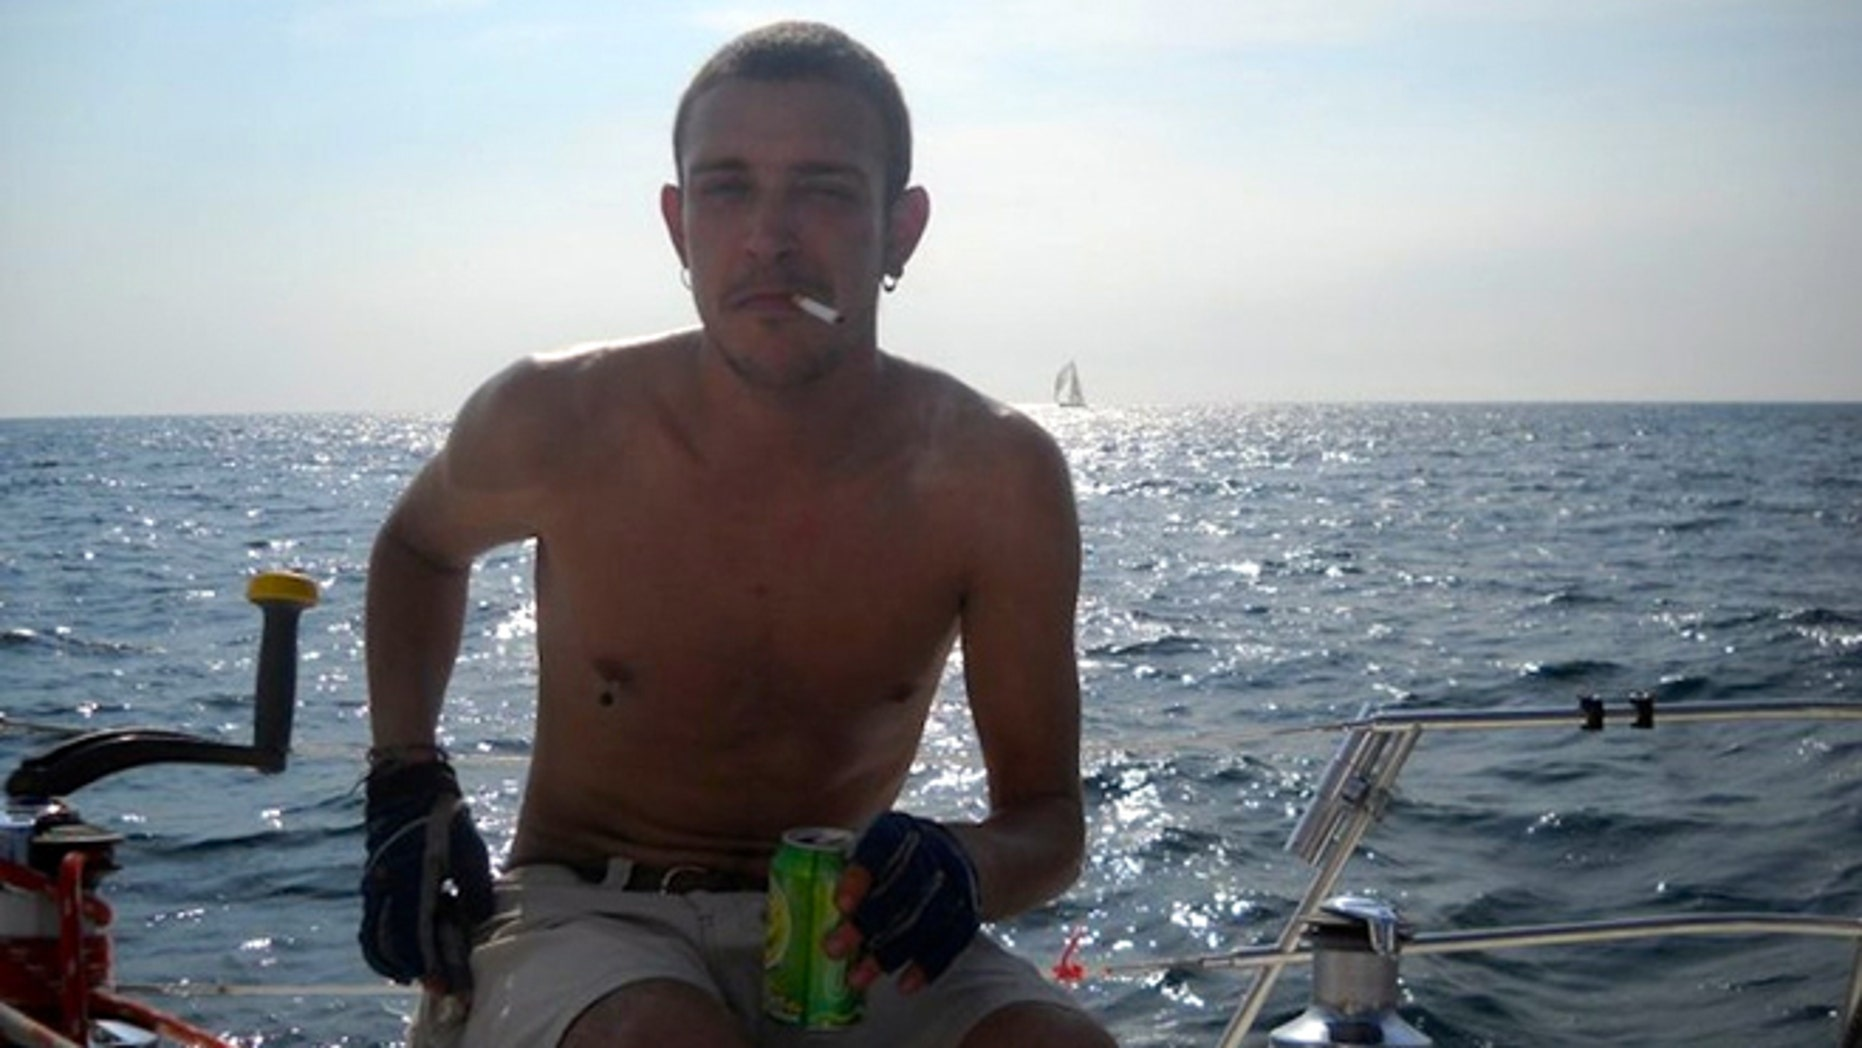 Patrick Kowalski in a boat in Acapulco, Mexico, before he was deported back to the United States. (Photo: Courtesy of Patrick Kowalski)